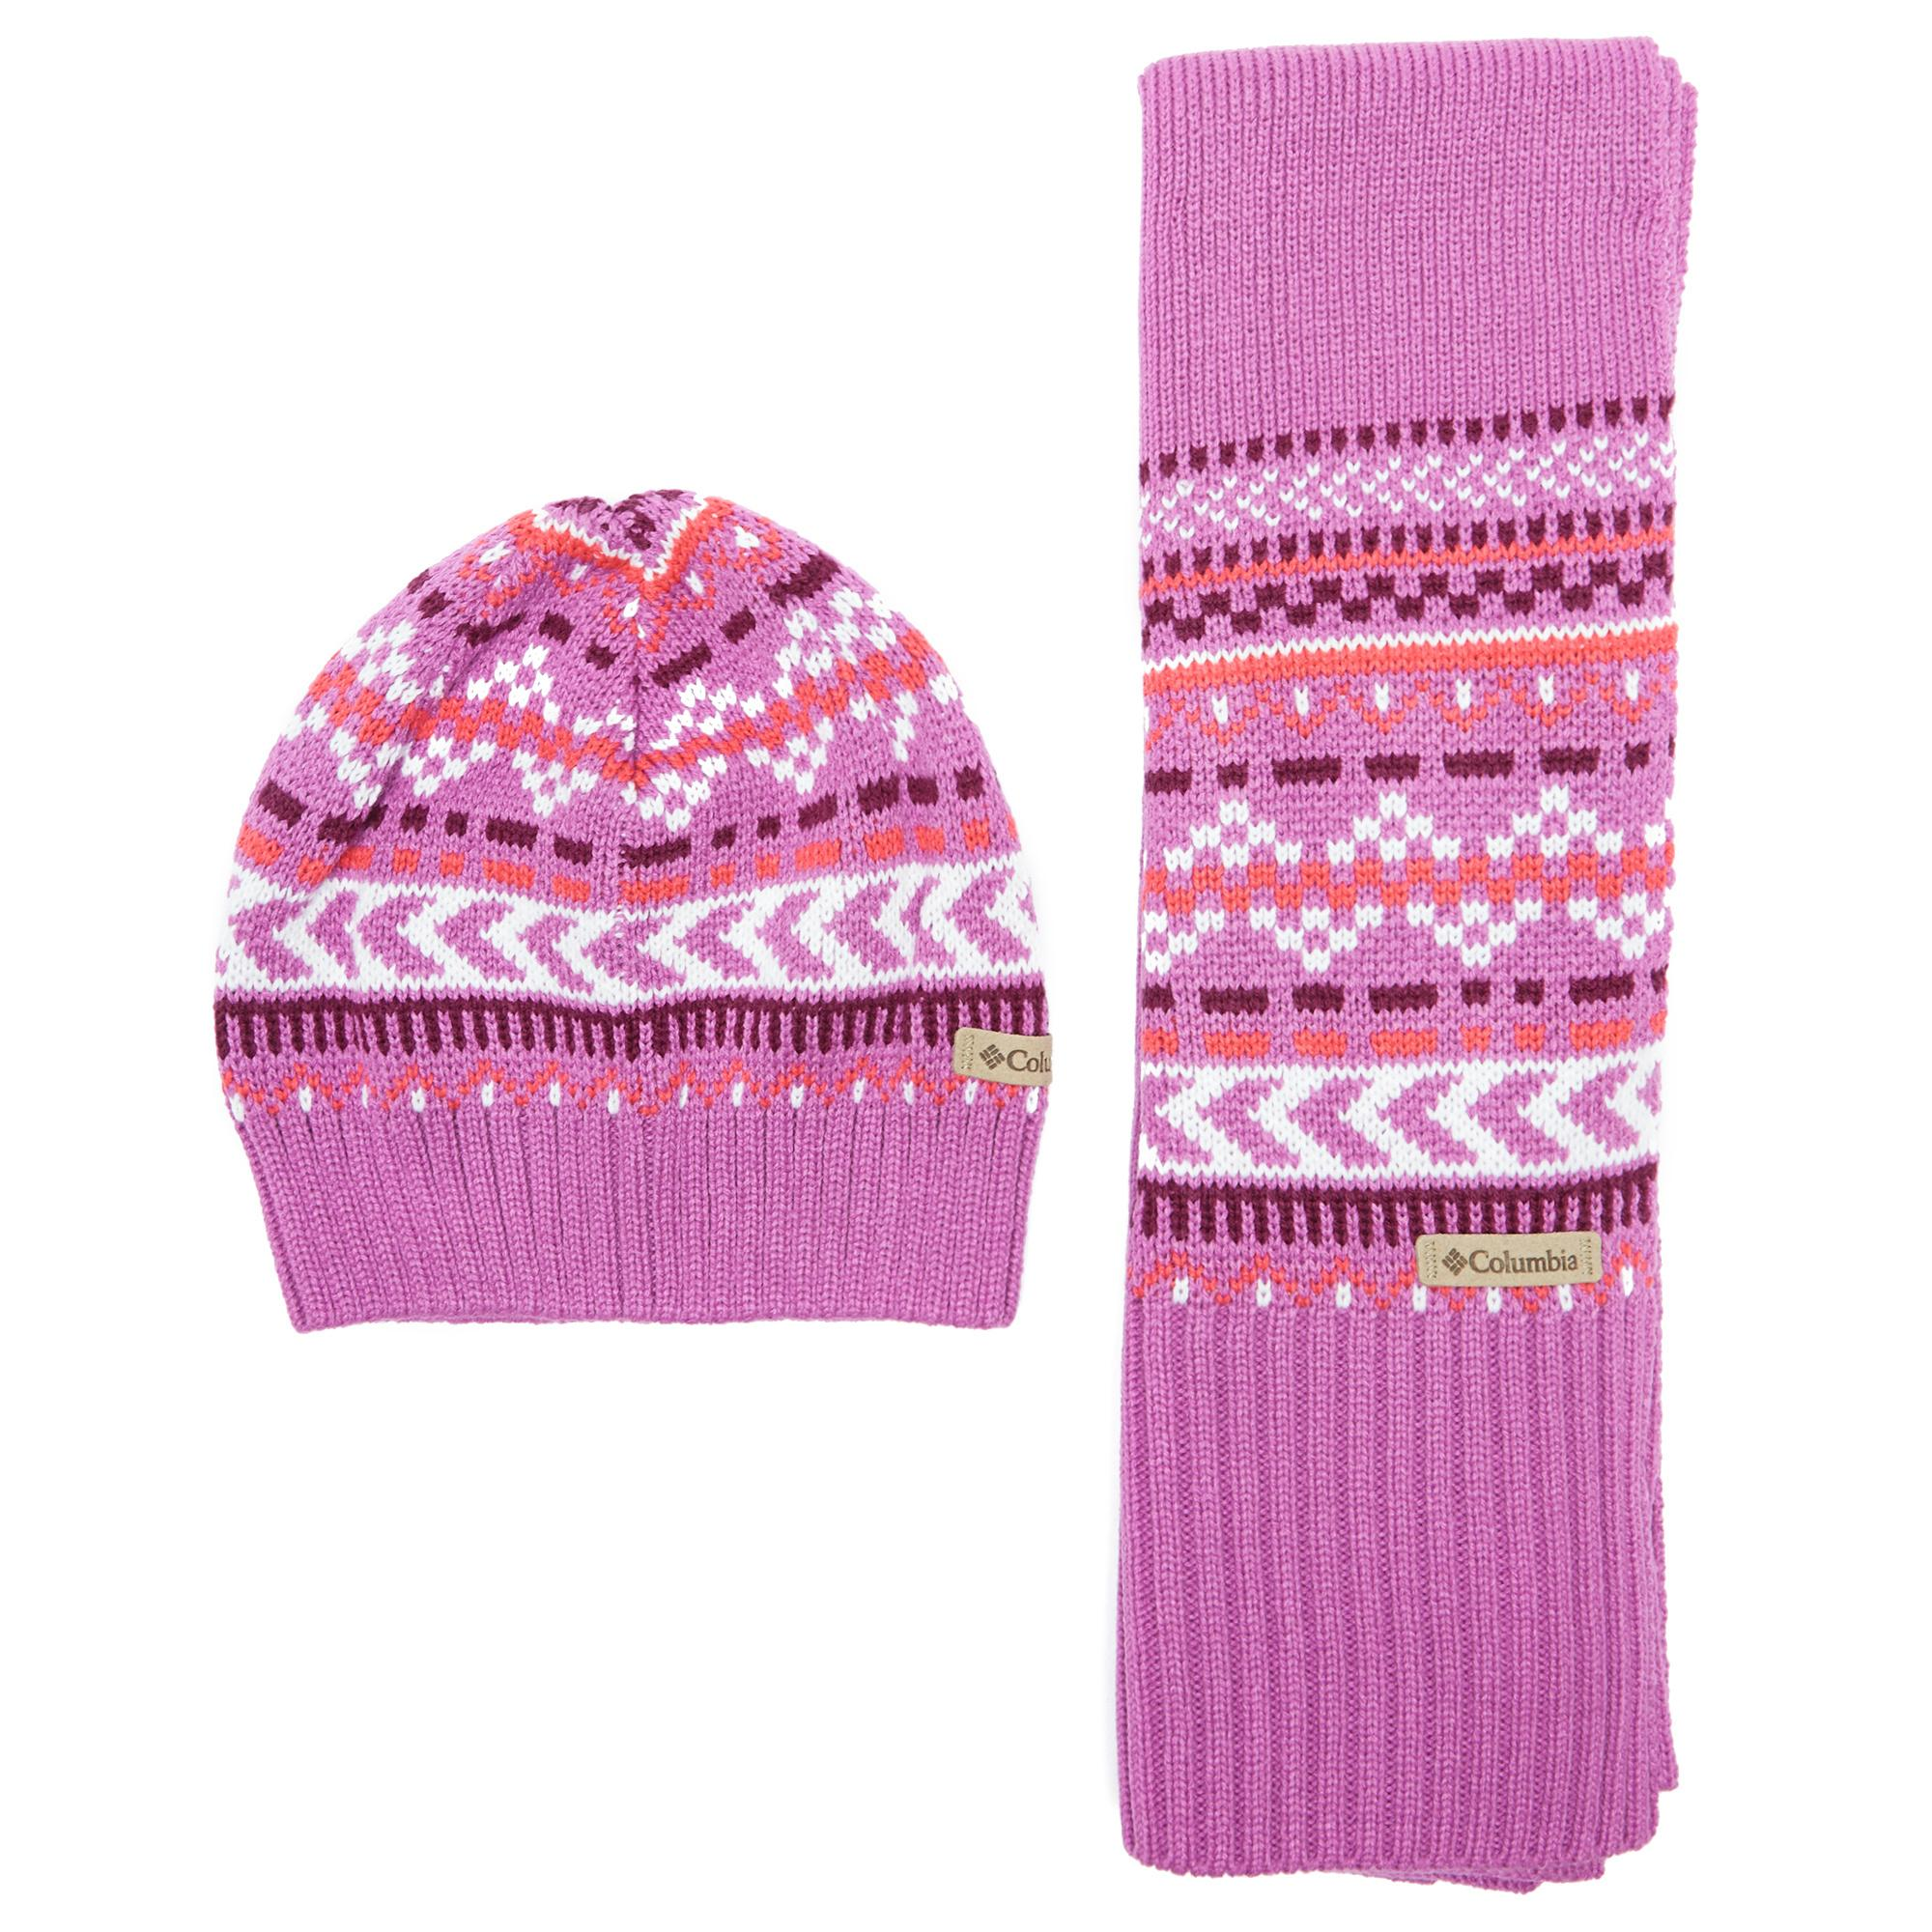 Columbia Women's Winter Worn Hat and Scarf Set, Pink